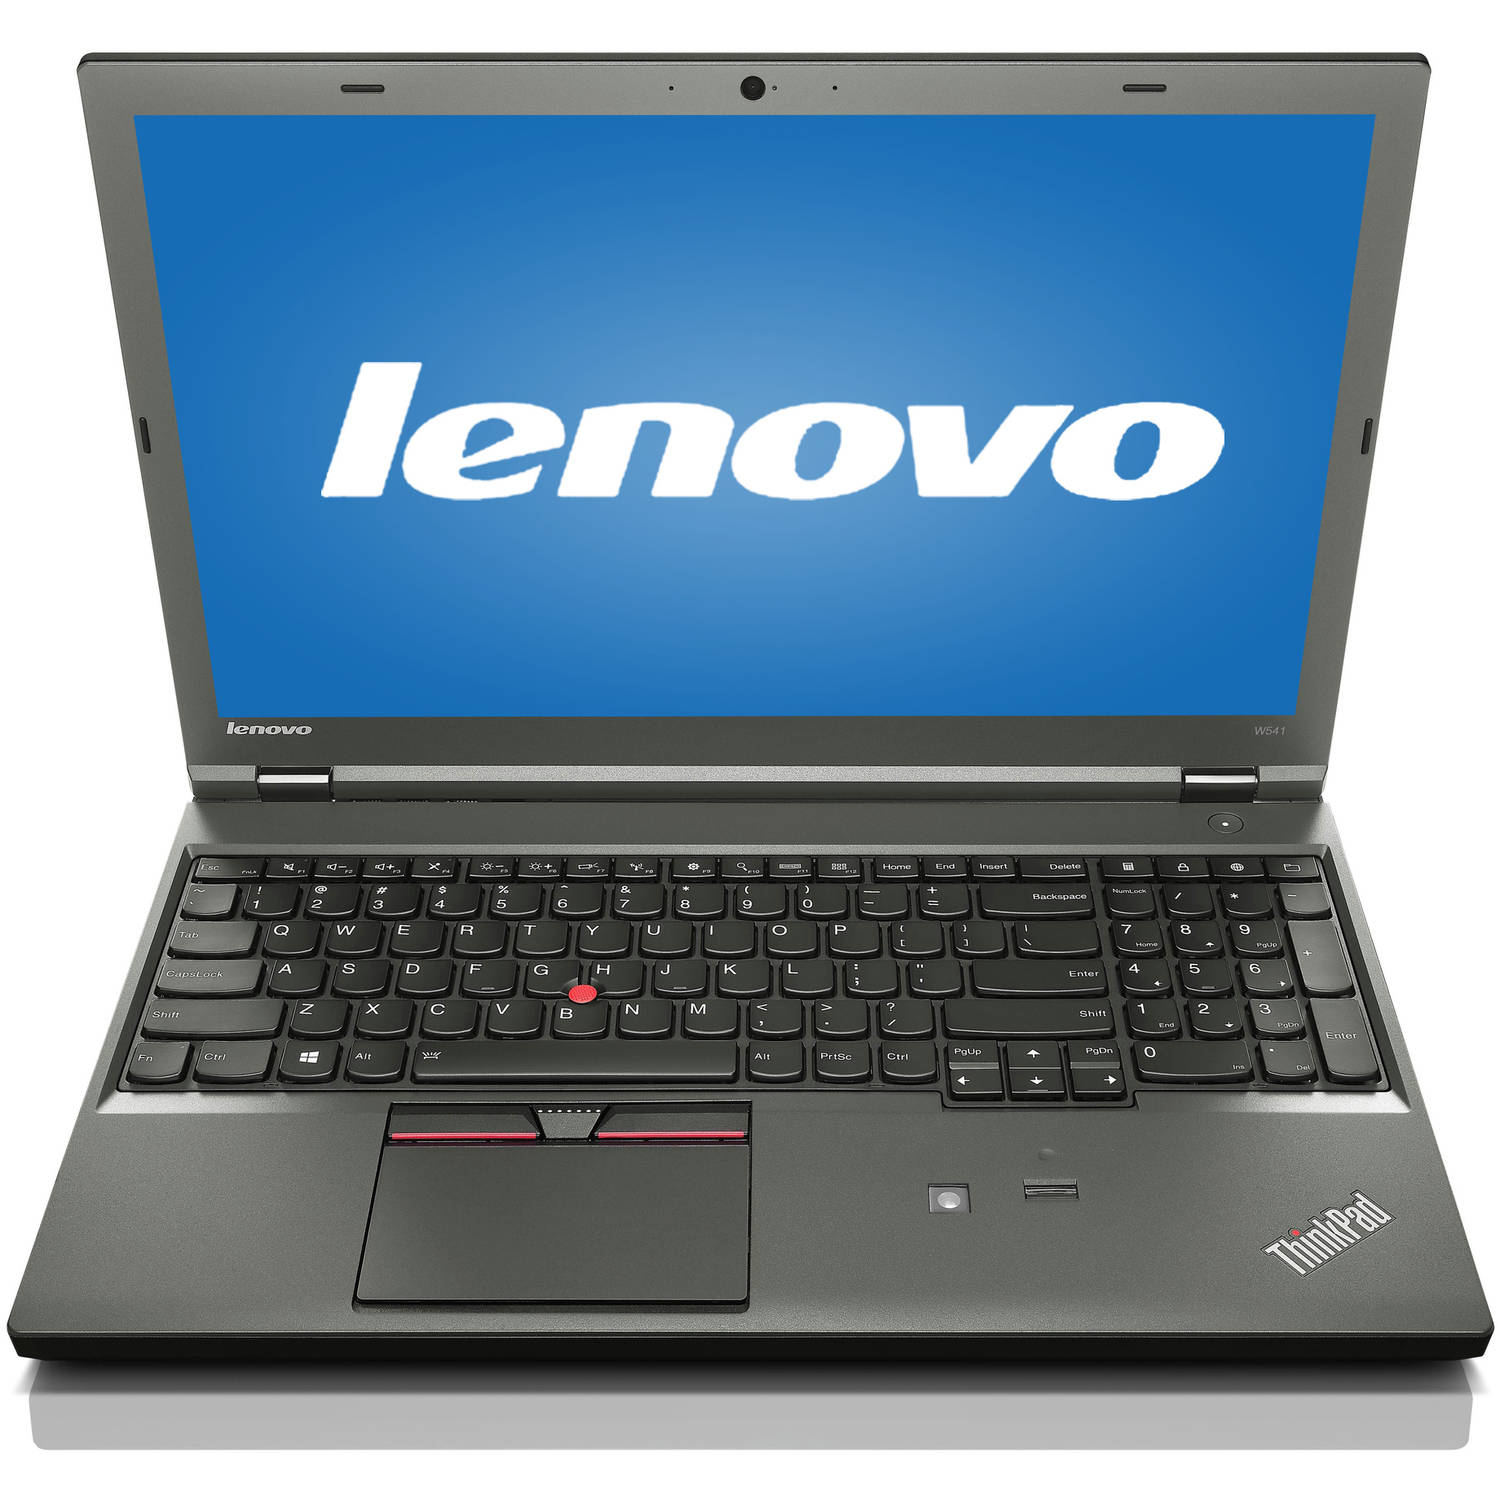 "Lenovo Thinkpad W541 15.6"" Led Notebook W/intel"